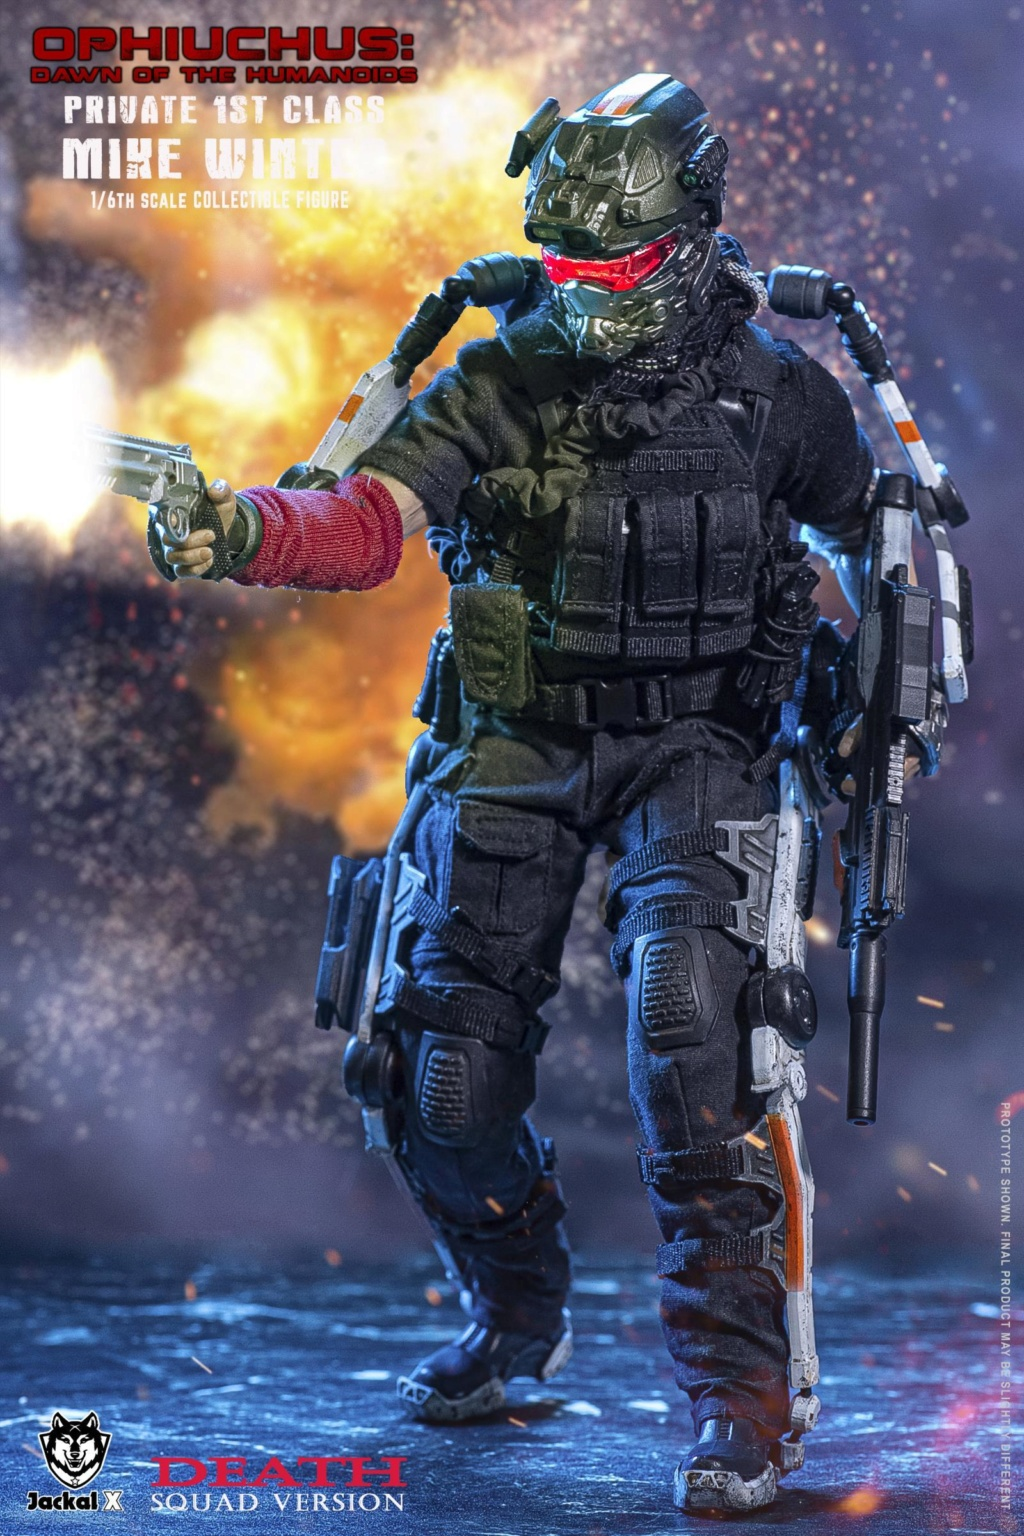 military - NEW PRODUCT: JackalX: 1/6 Ophiuchus: Dawn of Humanoid: Private 1st Class Mike Winter Collectible Figure (2 Versions) 43202033